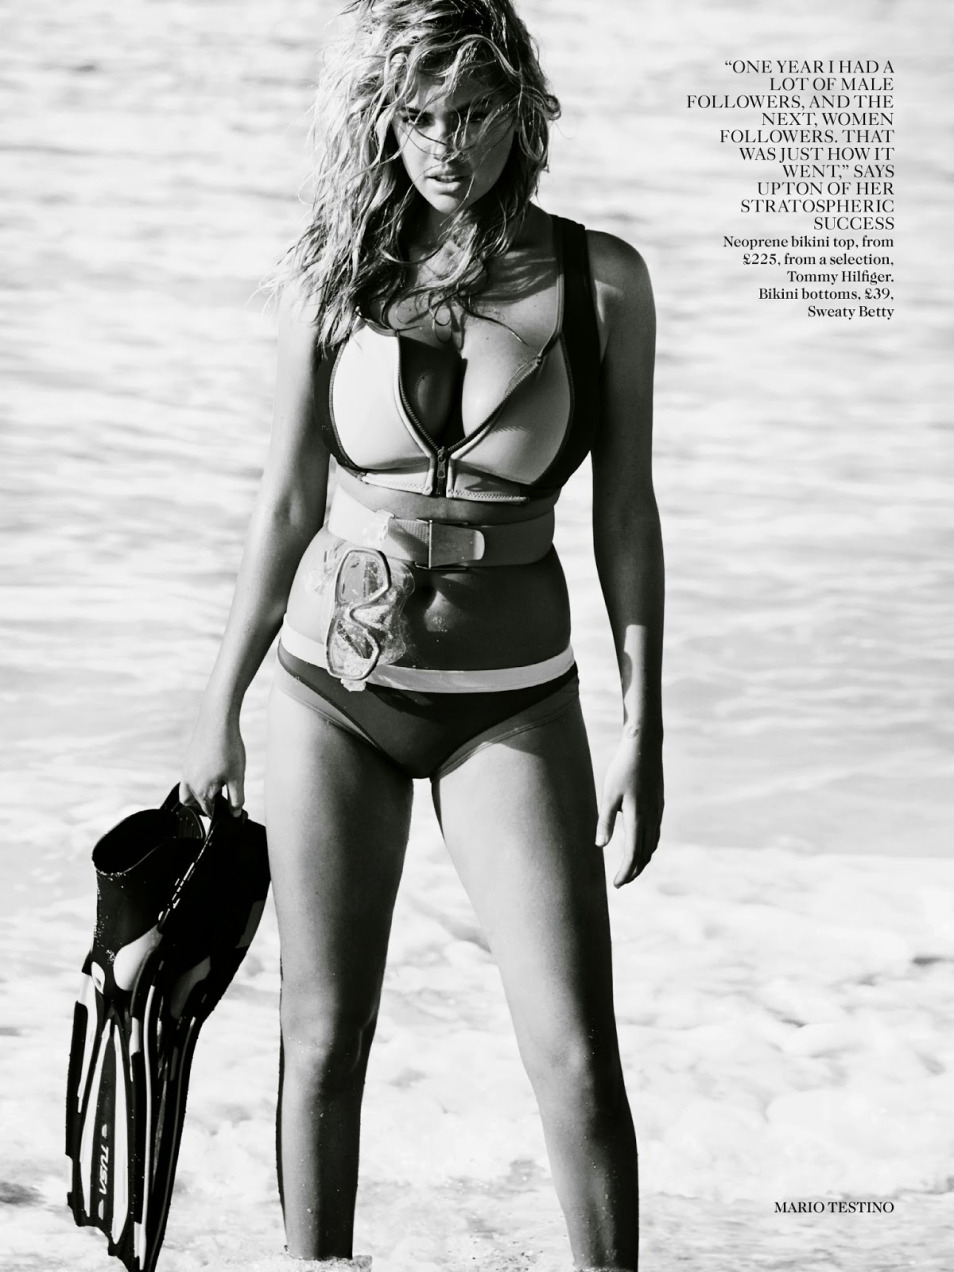 ff8207b923866 LIFE S A BEACH  KATE UPTON FLAUNTS CURVES FOR BRITISH VOGUE ...